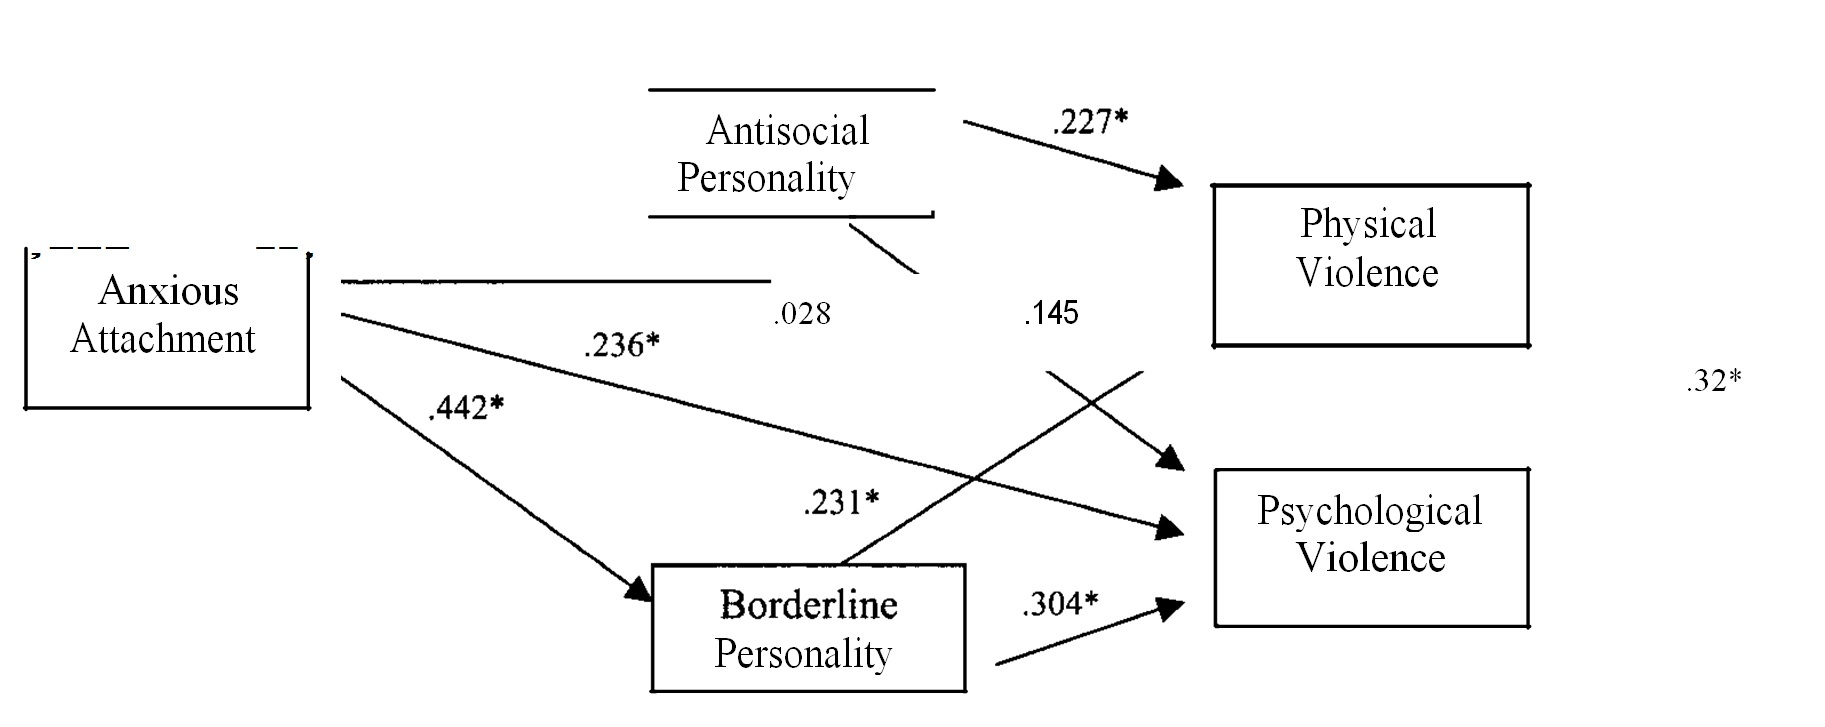 Borderline and Antisocial Personality Scores as Mediators